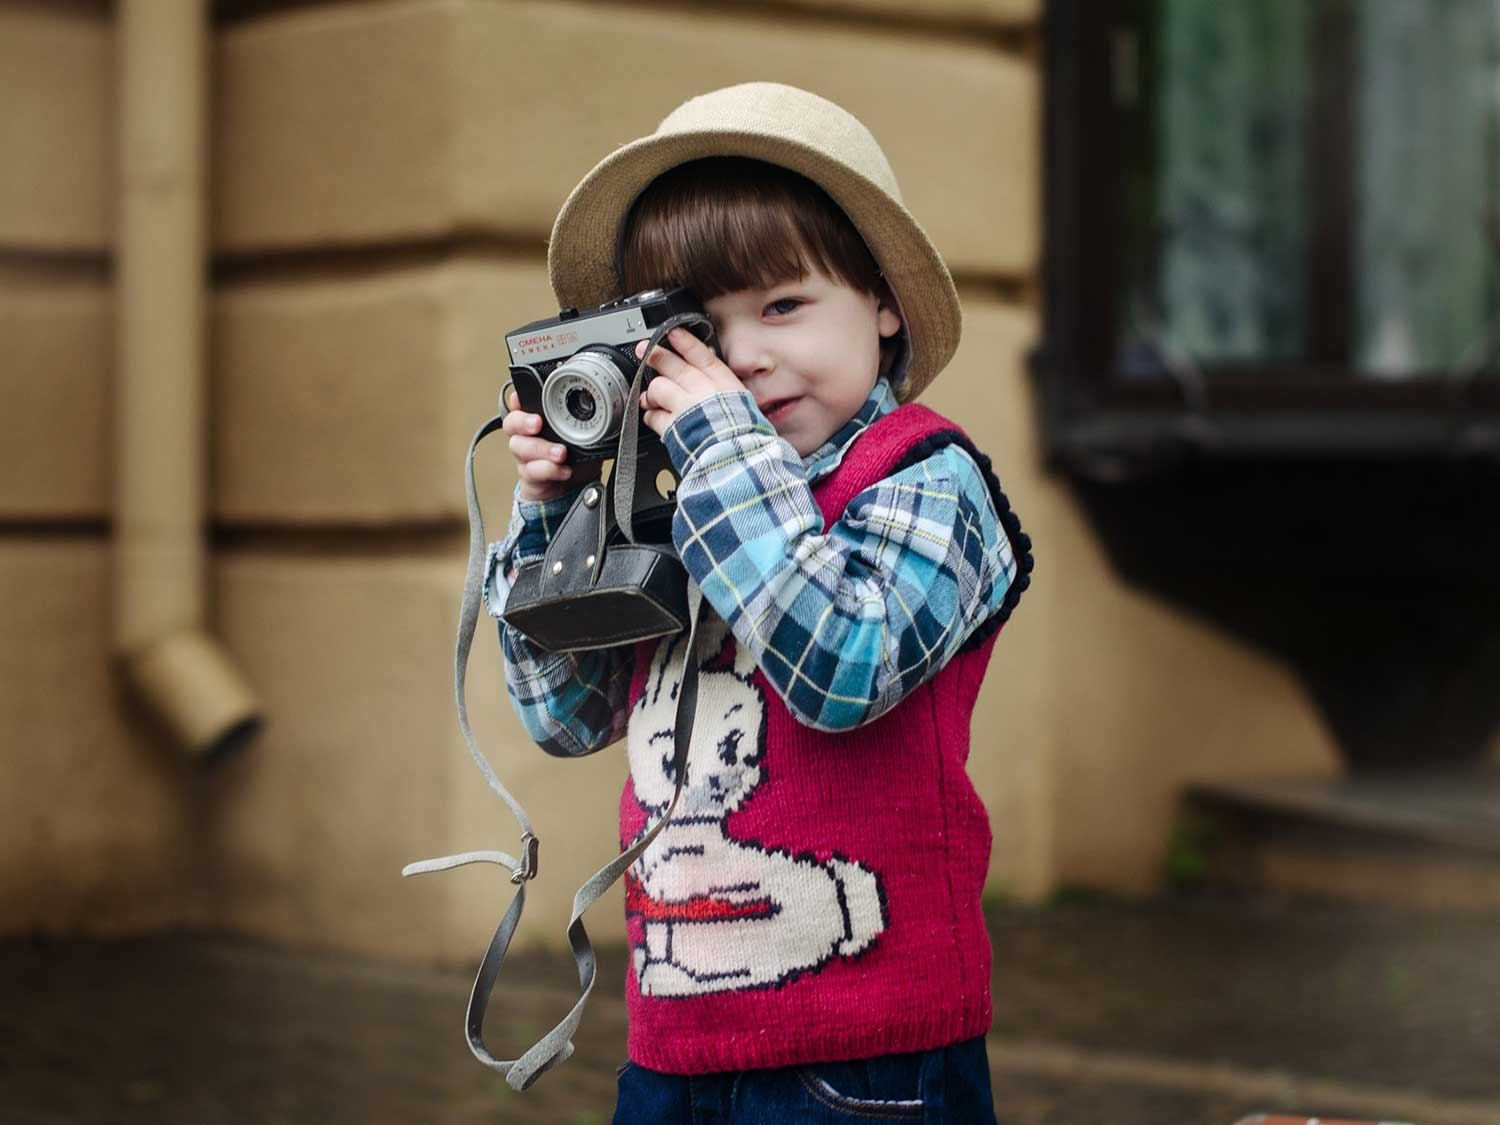 Kid taking a picture with camera.